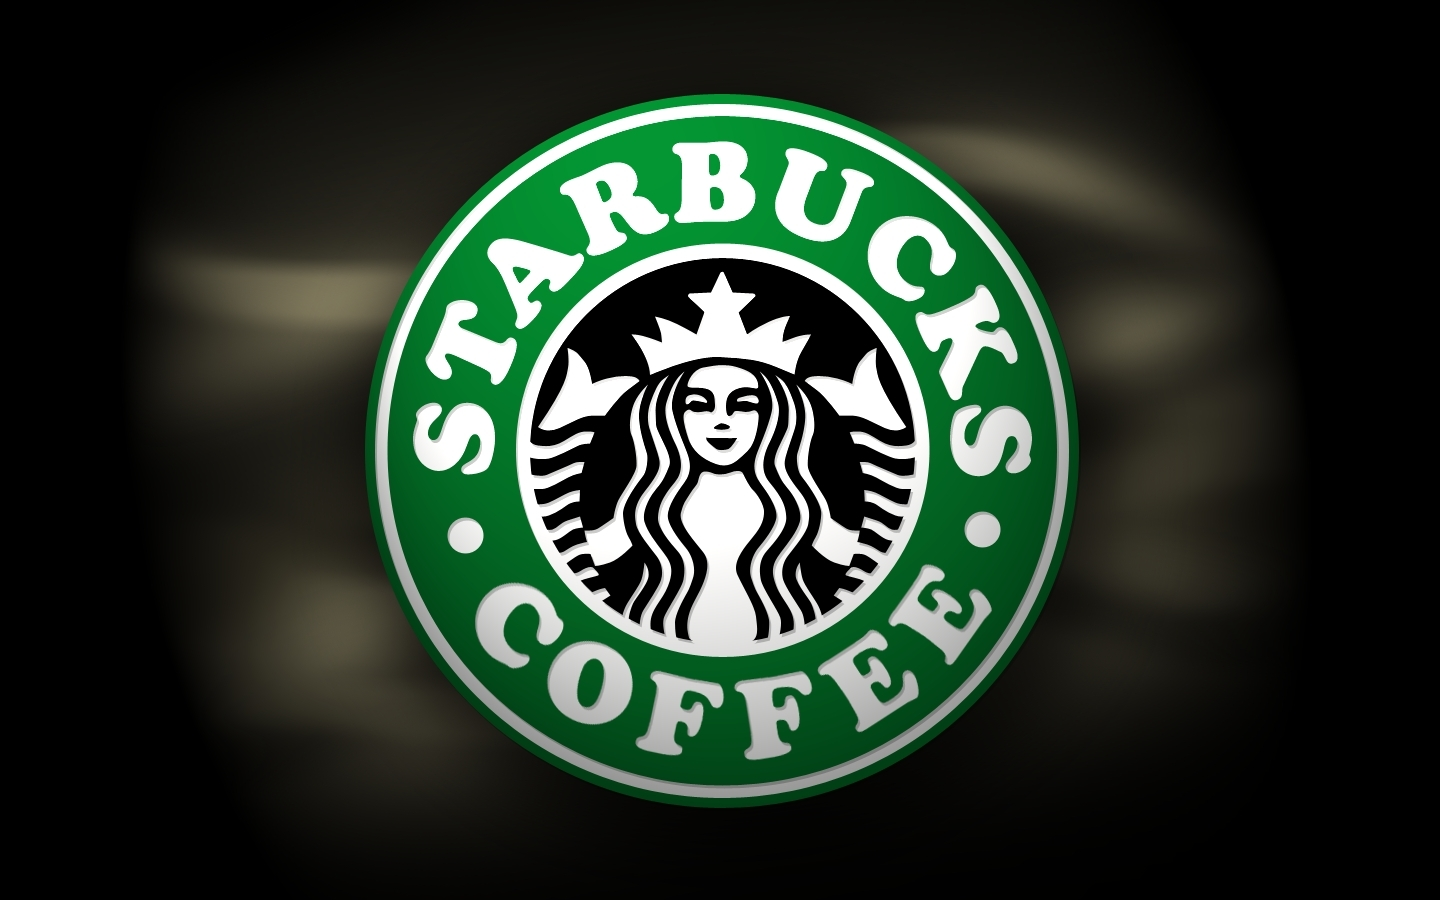 Starbucks Logo Wallpaper HD